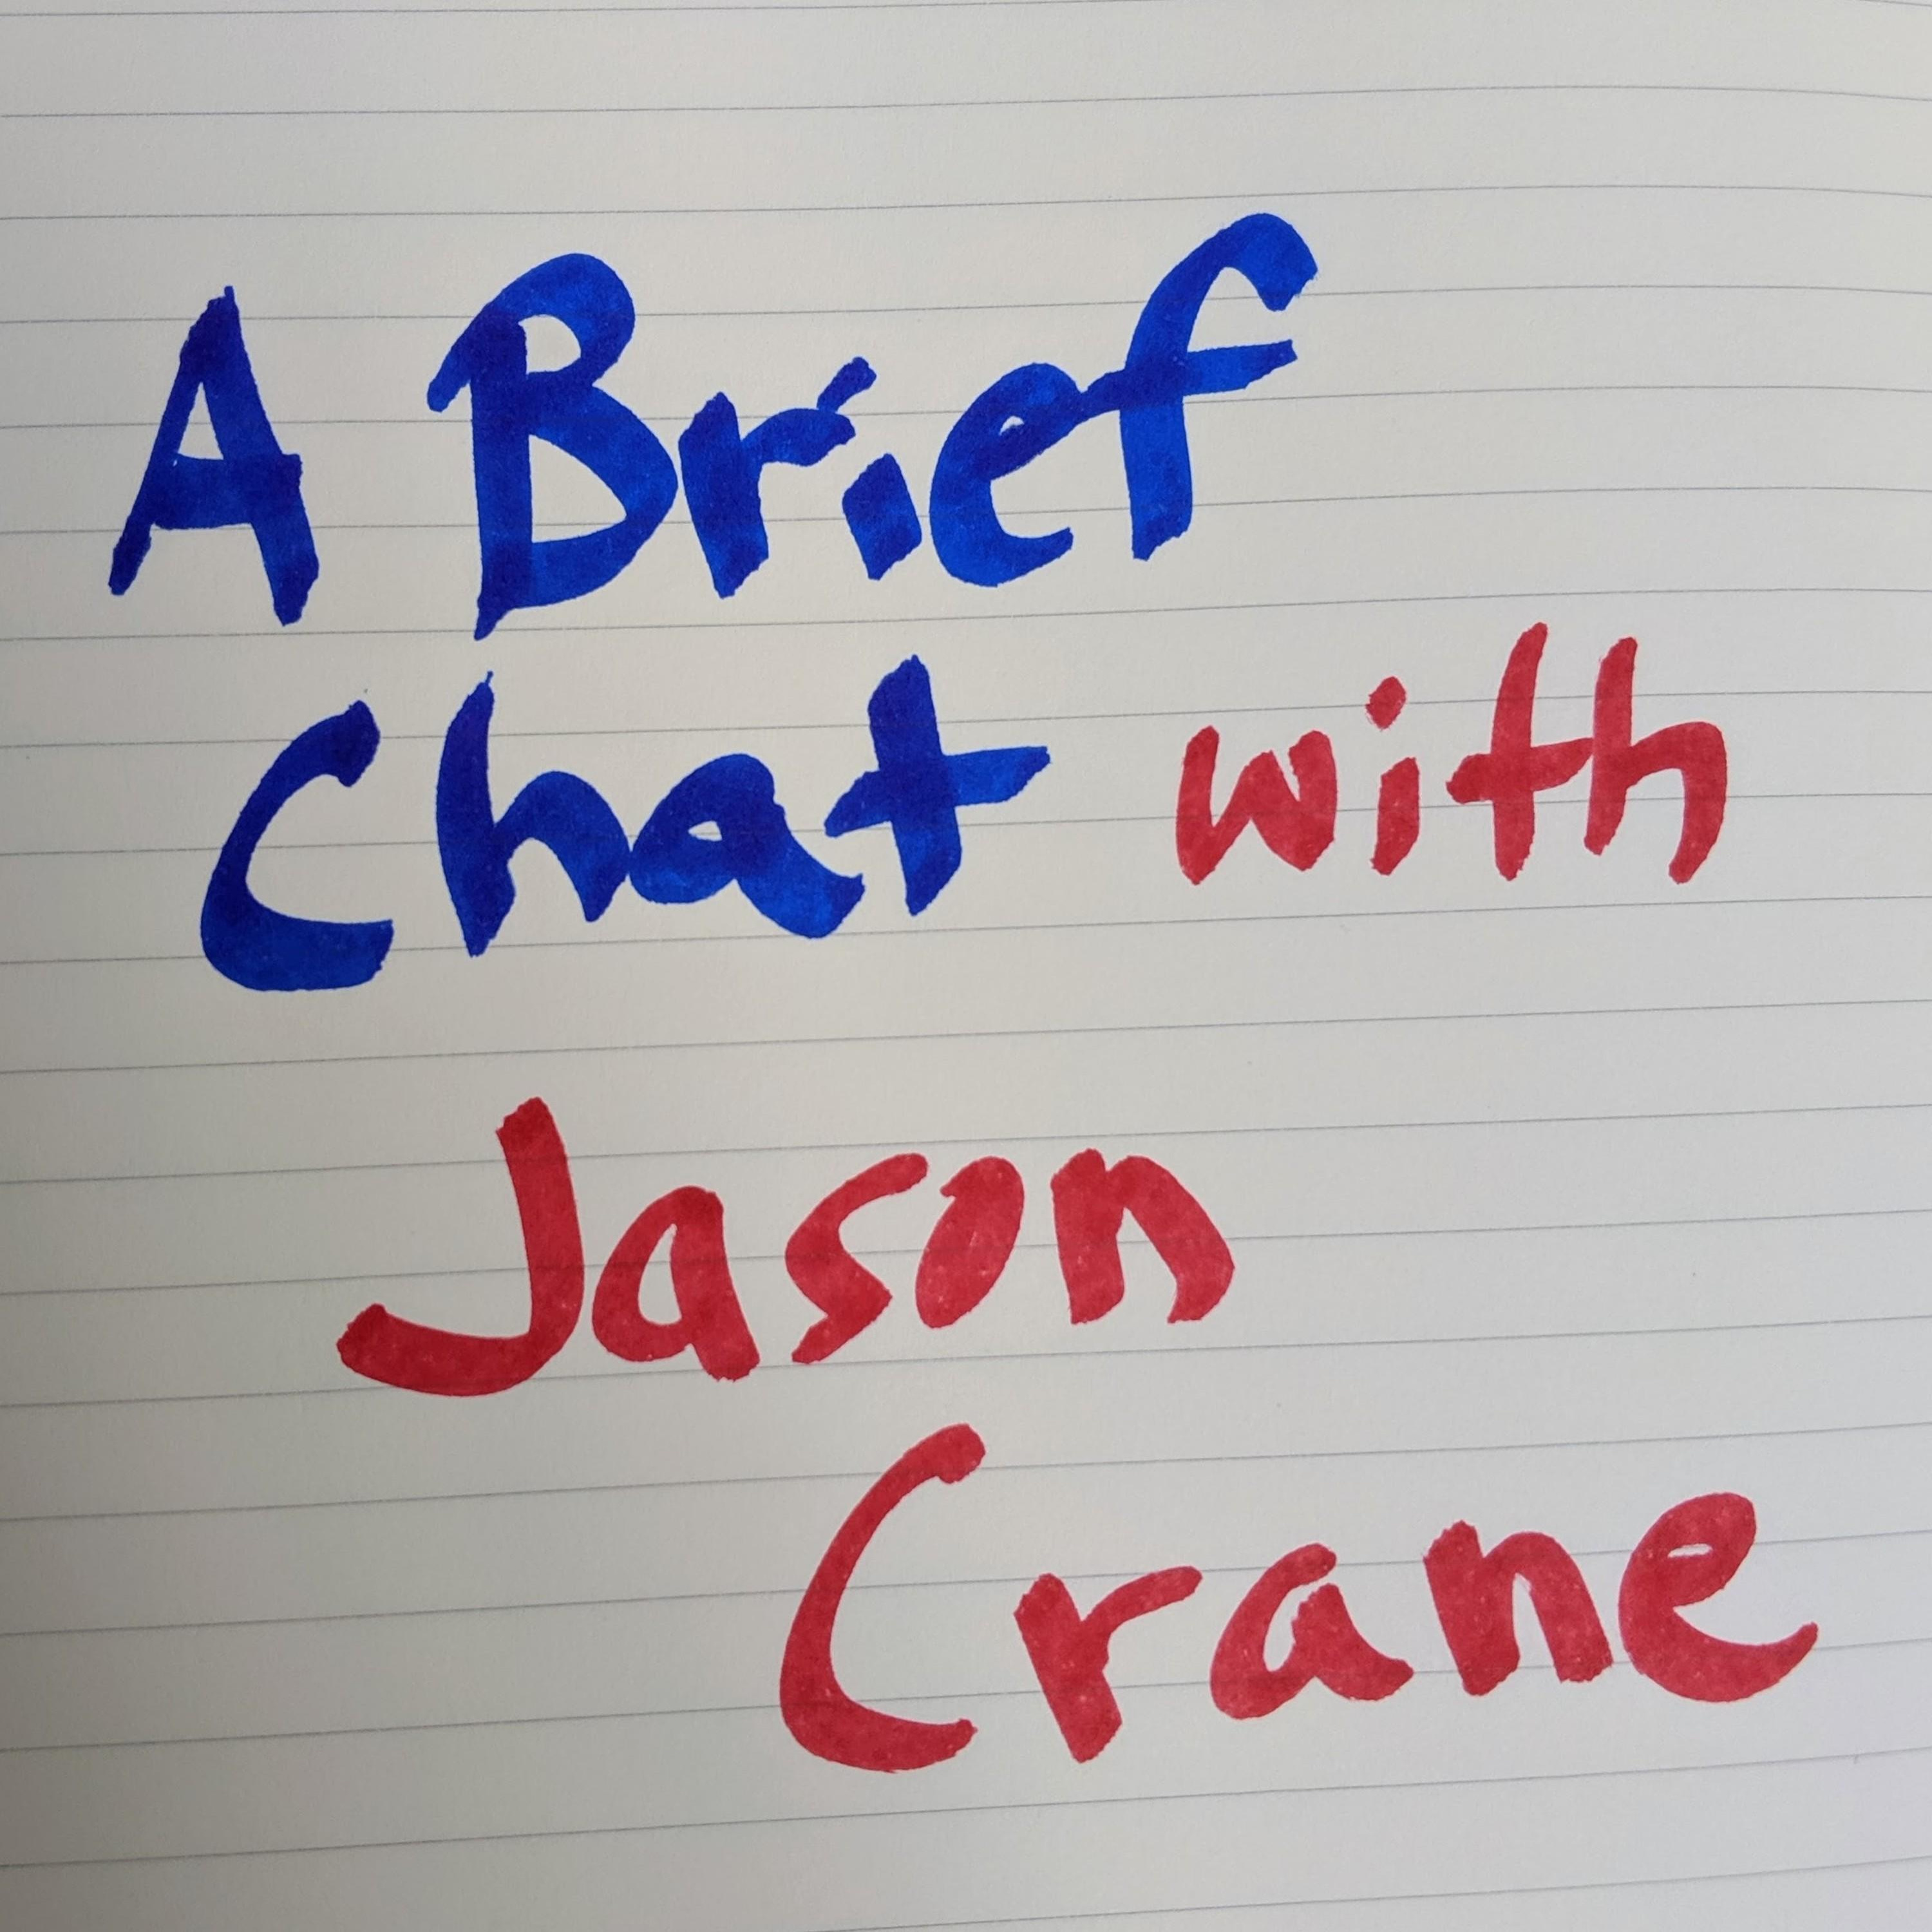 A Brief Chat with Jason Crane